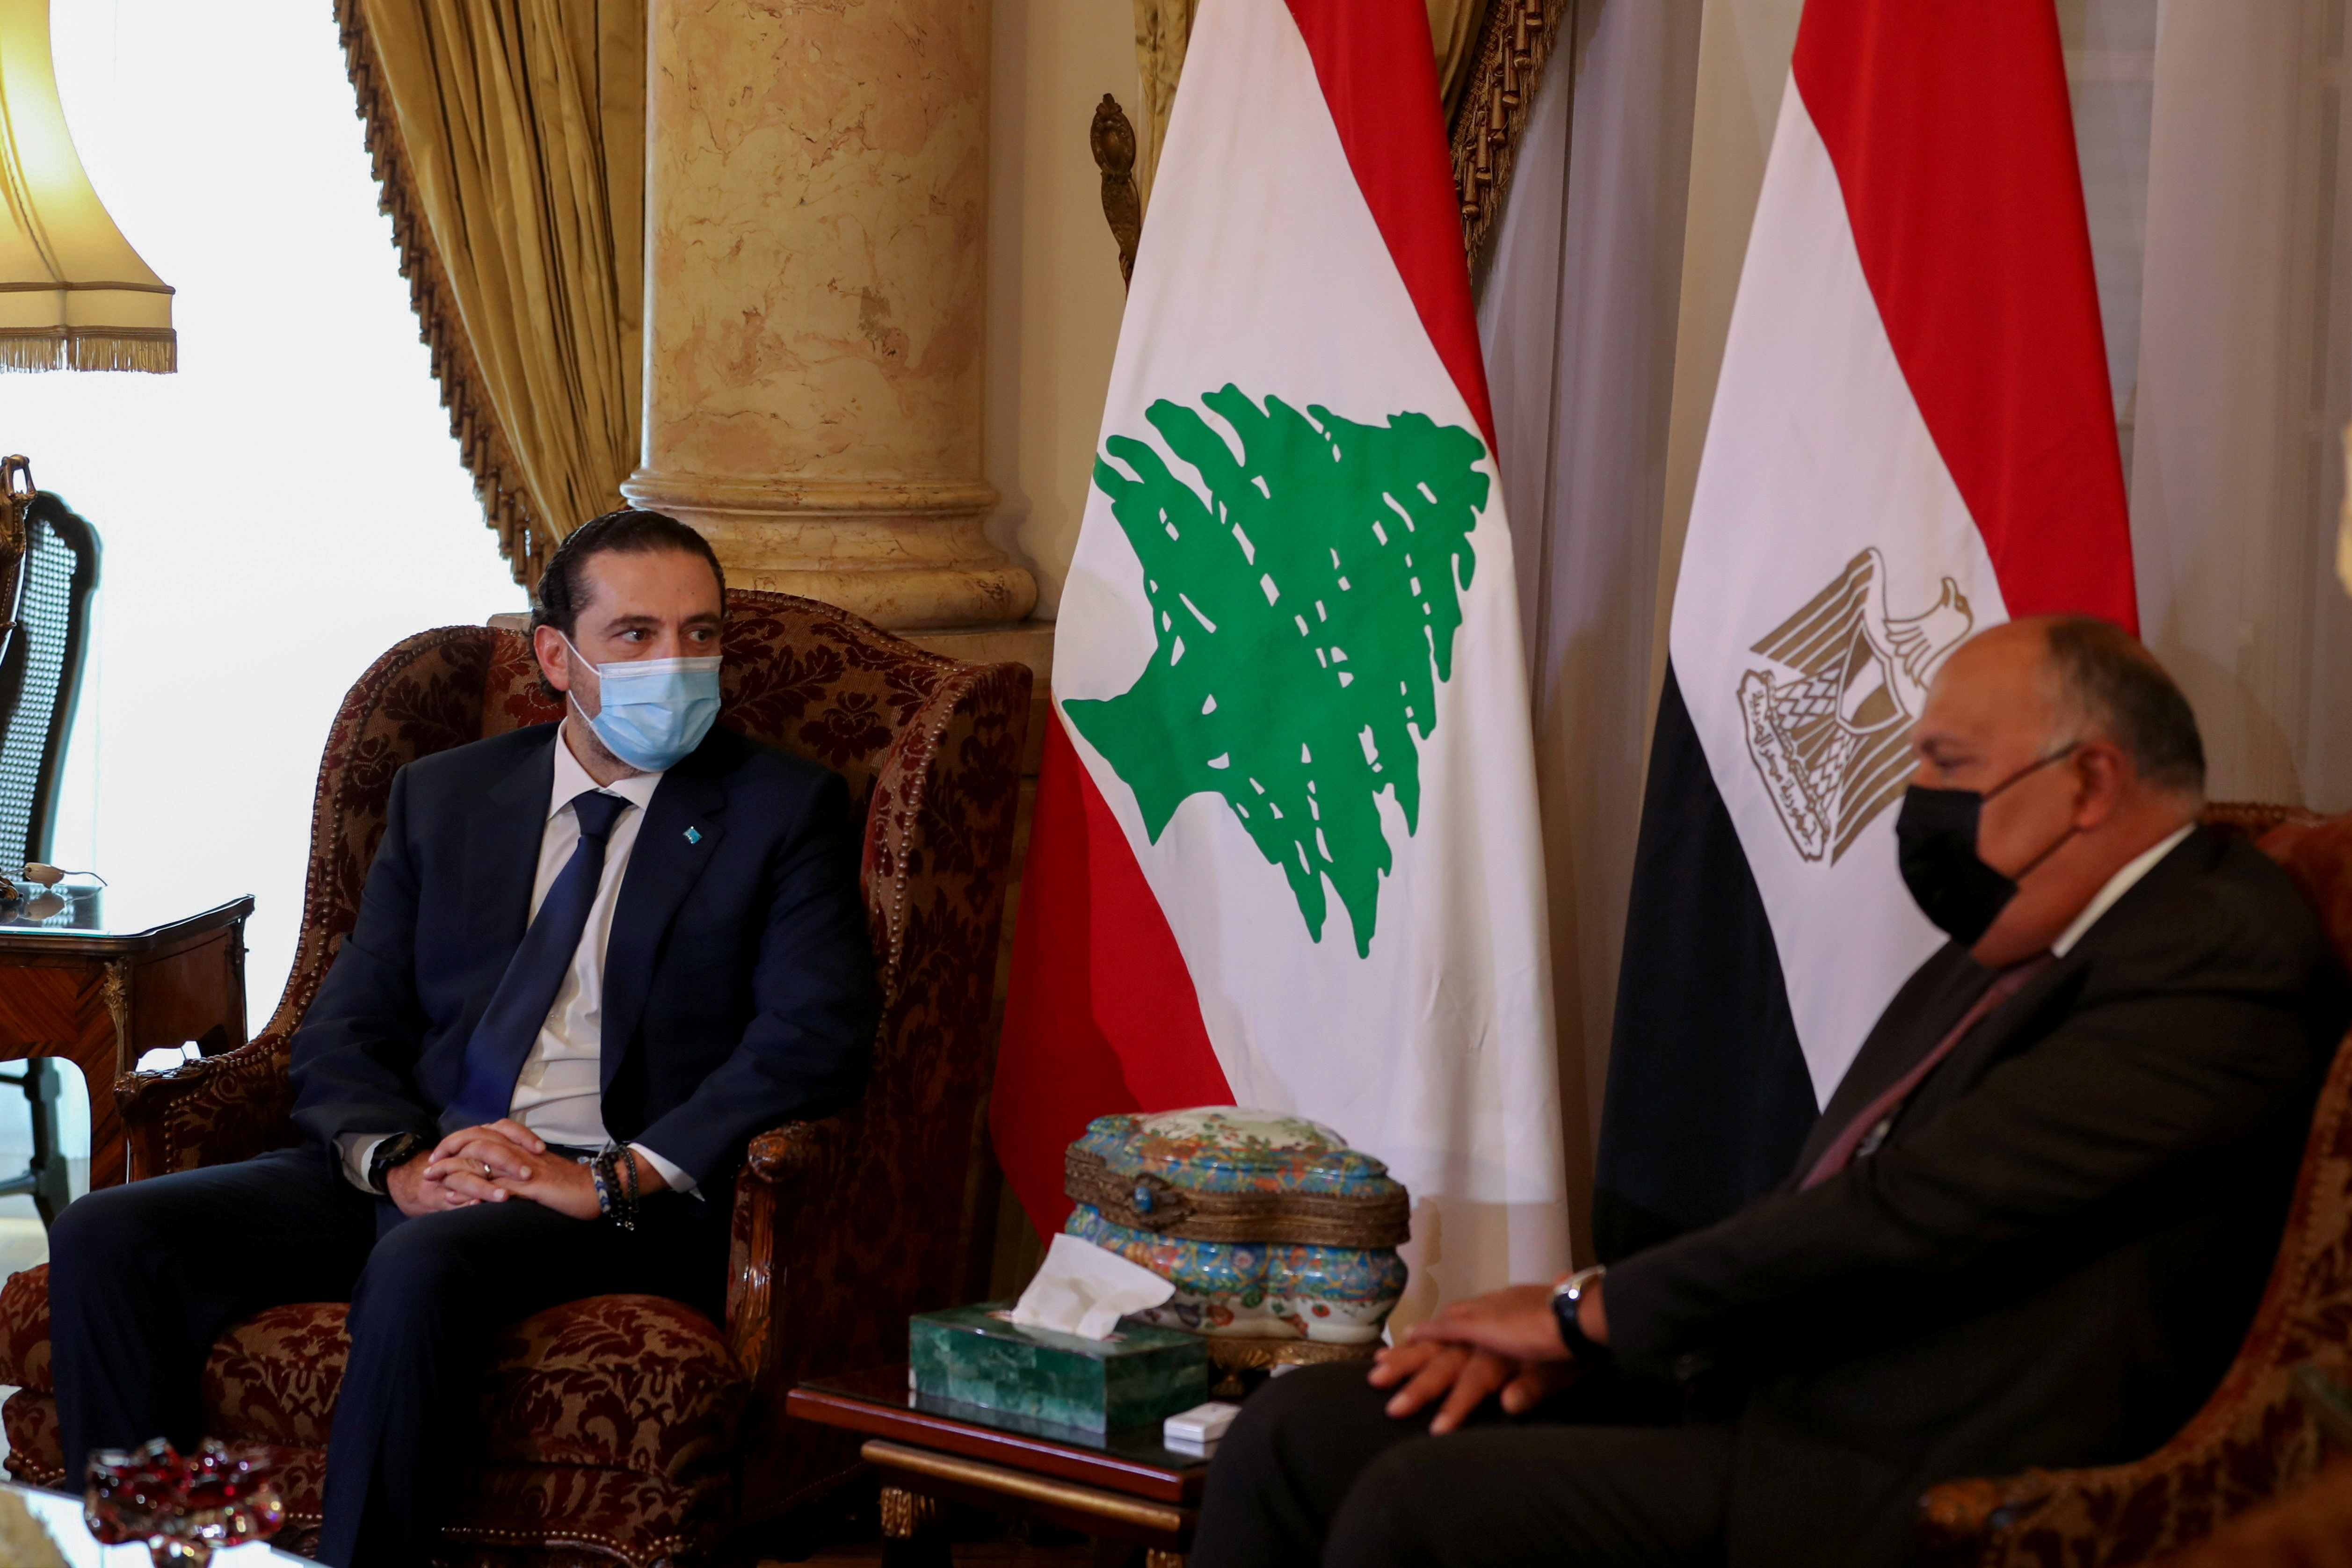 Egyptian Foreign Minister Sameh Shoukry meets with Lebanese Prime Minister-designate Saad al-Hariri at Tahrir Palace in Cairo, Egypt July 14, 2021. REUTERS/Mohamed Abd El Ghany